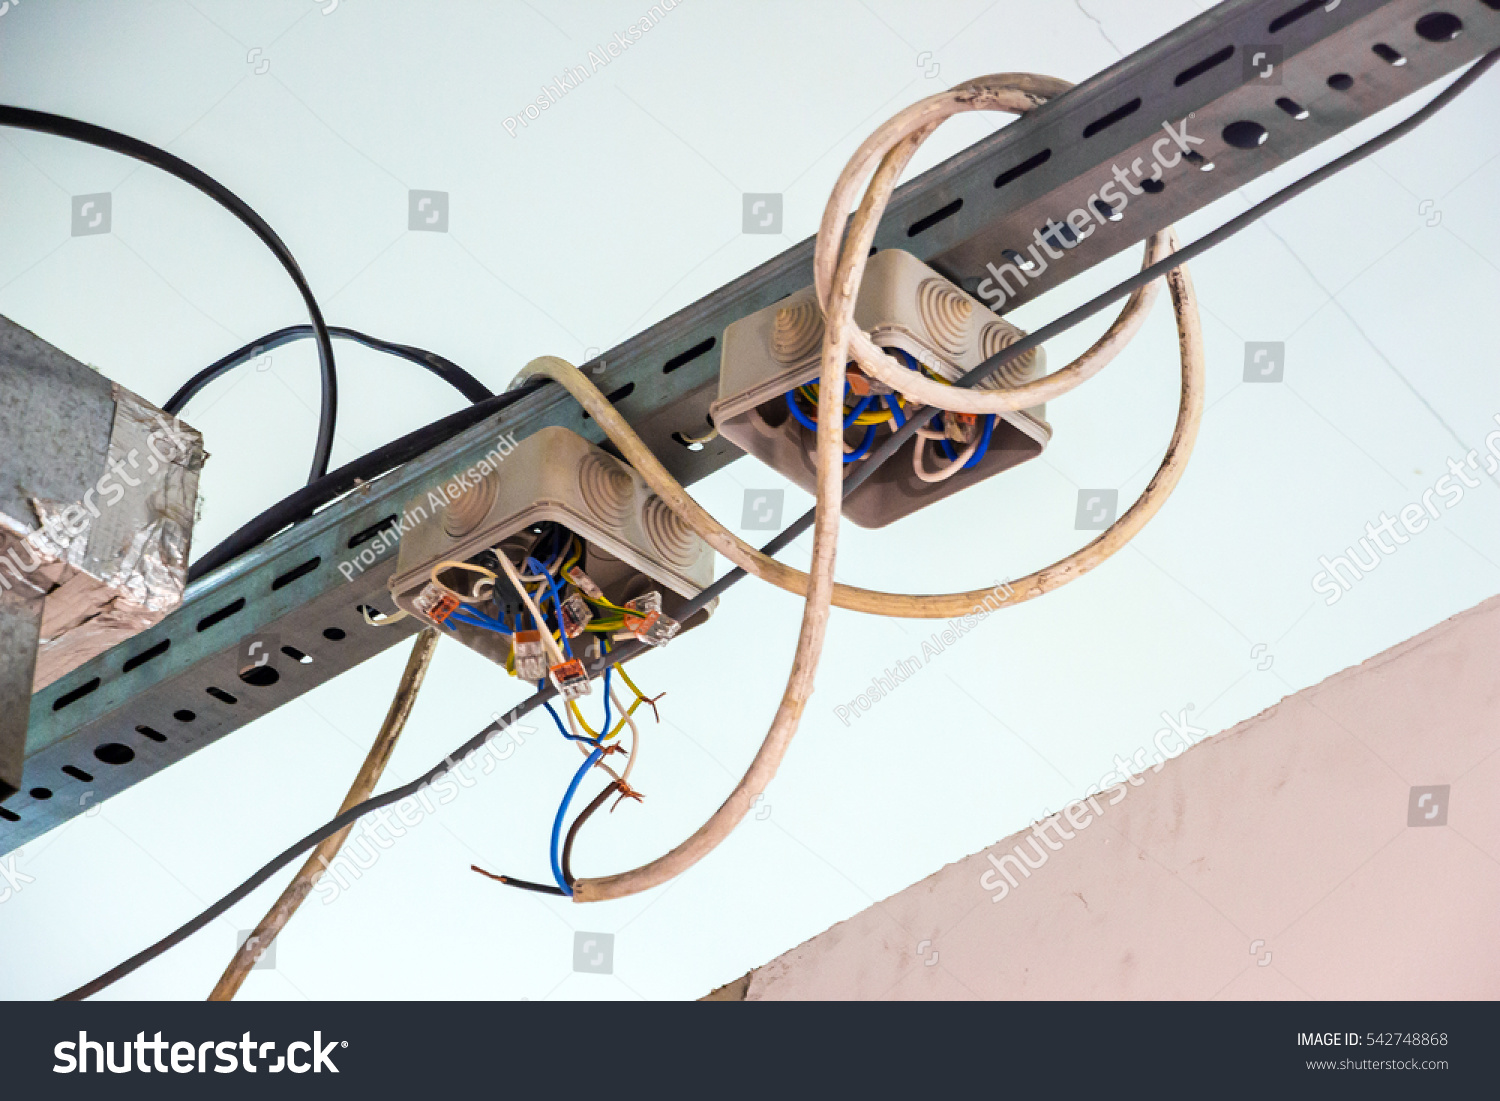 Electrical Wiring Exposed Wires Code Violation Stock Photo Edit Now Harness With